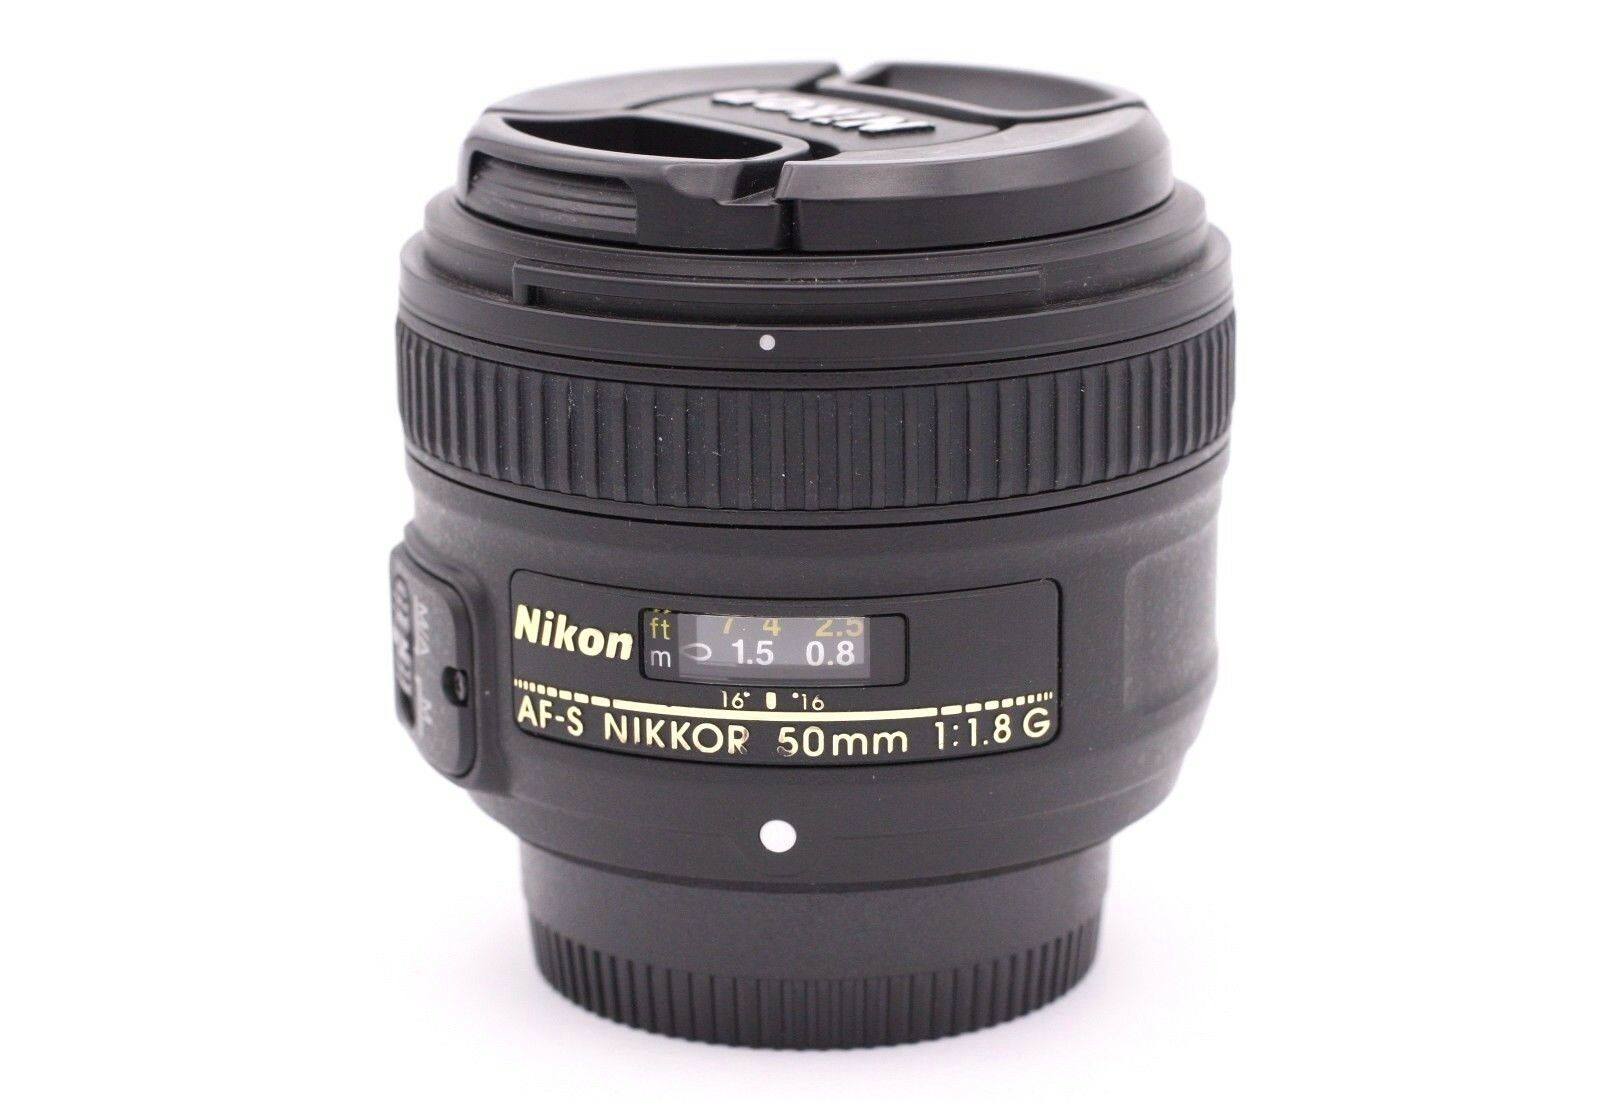 Nikon 50mm F 18g Af S Nikkor Lens For Dslr Cameras 20986 Where To Get Parts Diagram A D5000 Slr With Dx Vr Afs 1 Of 4only Available